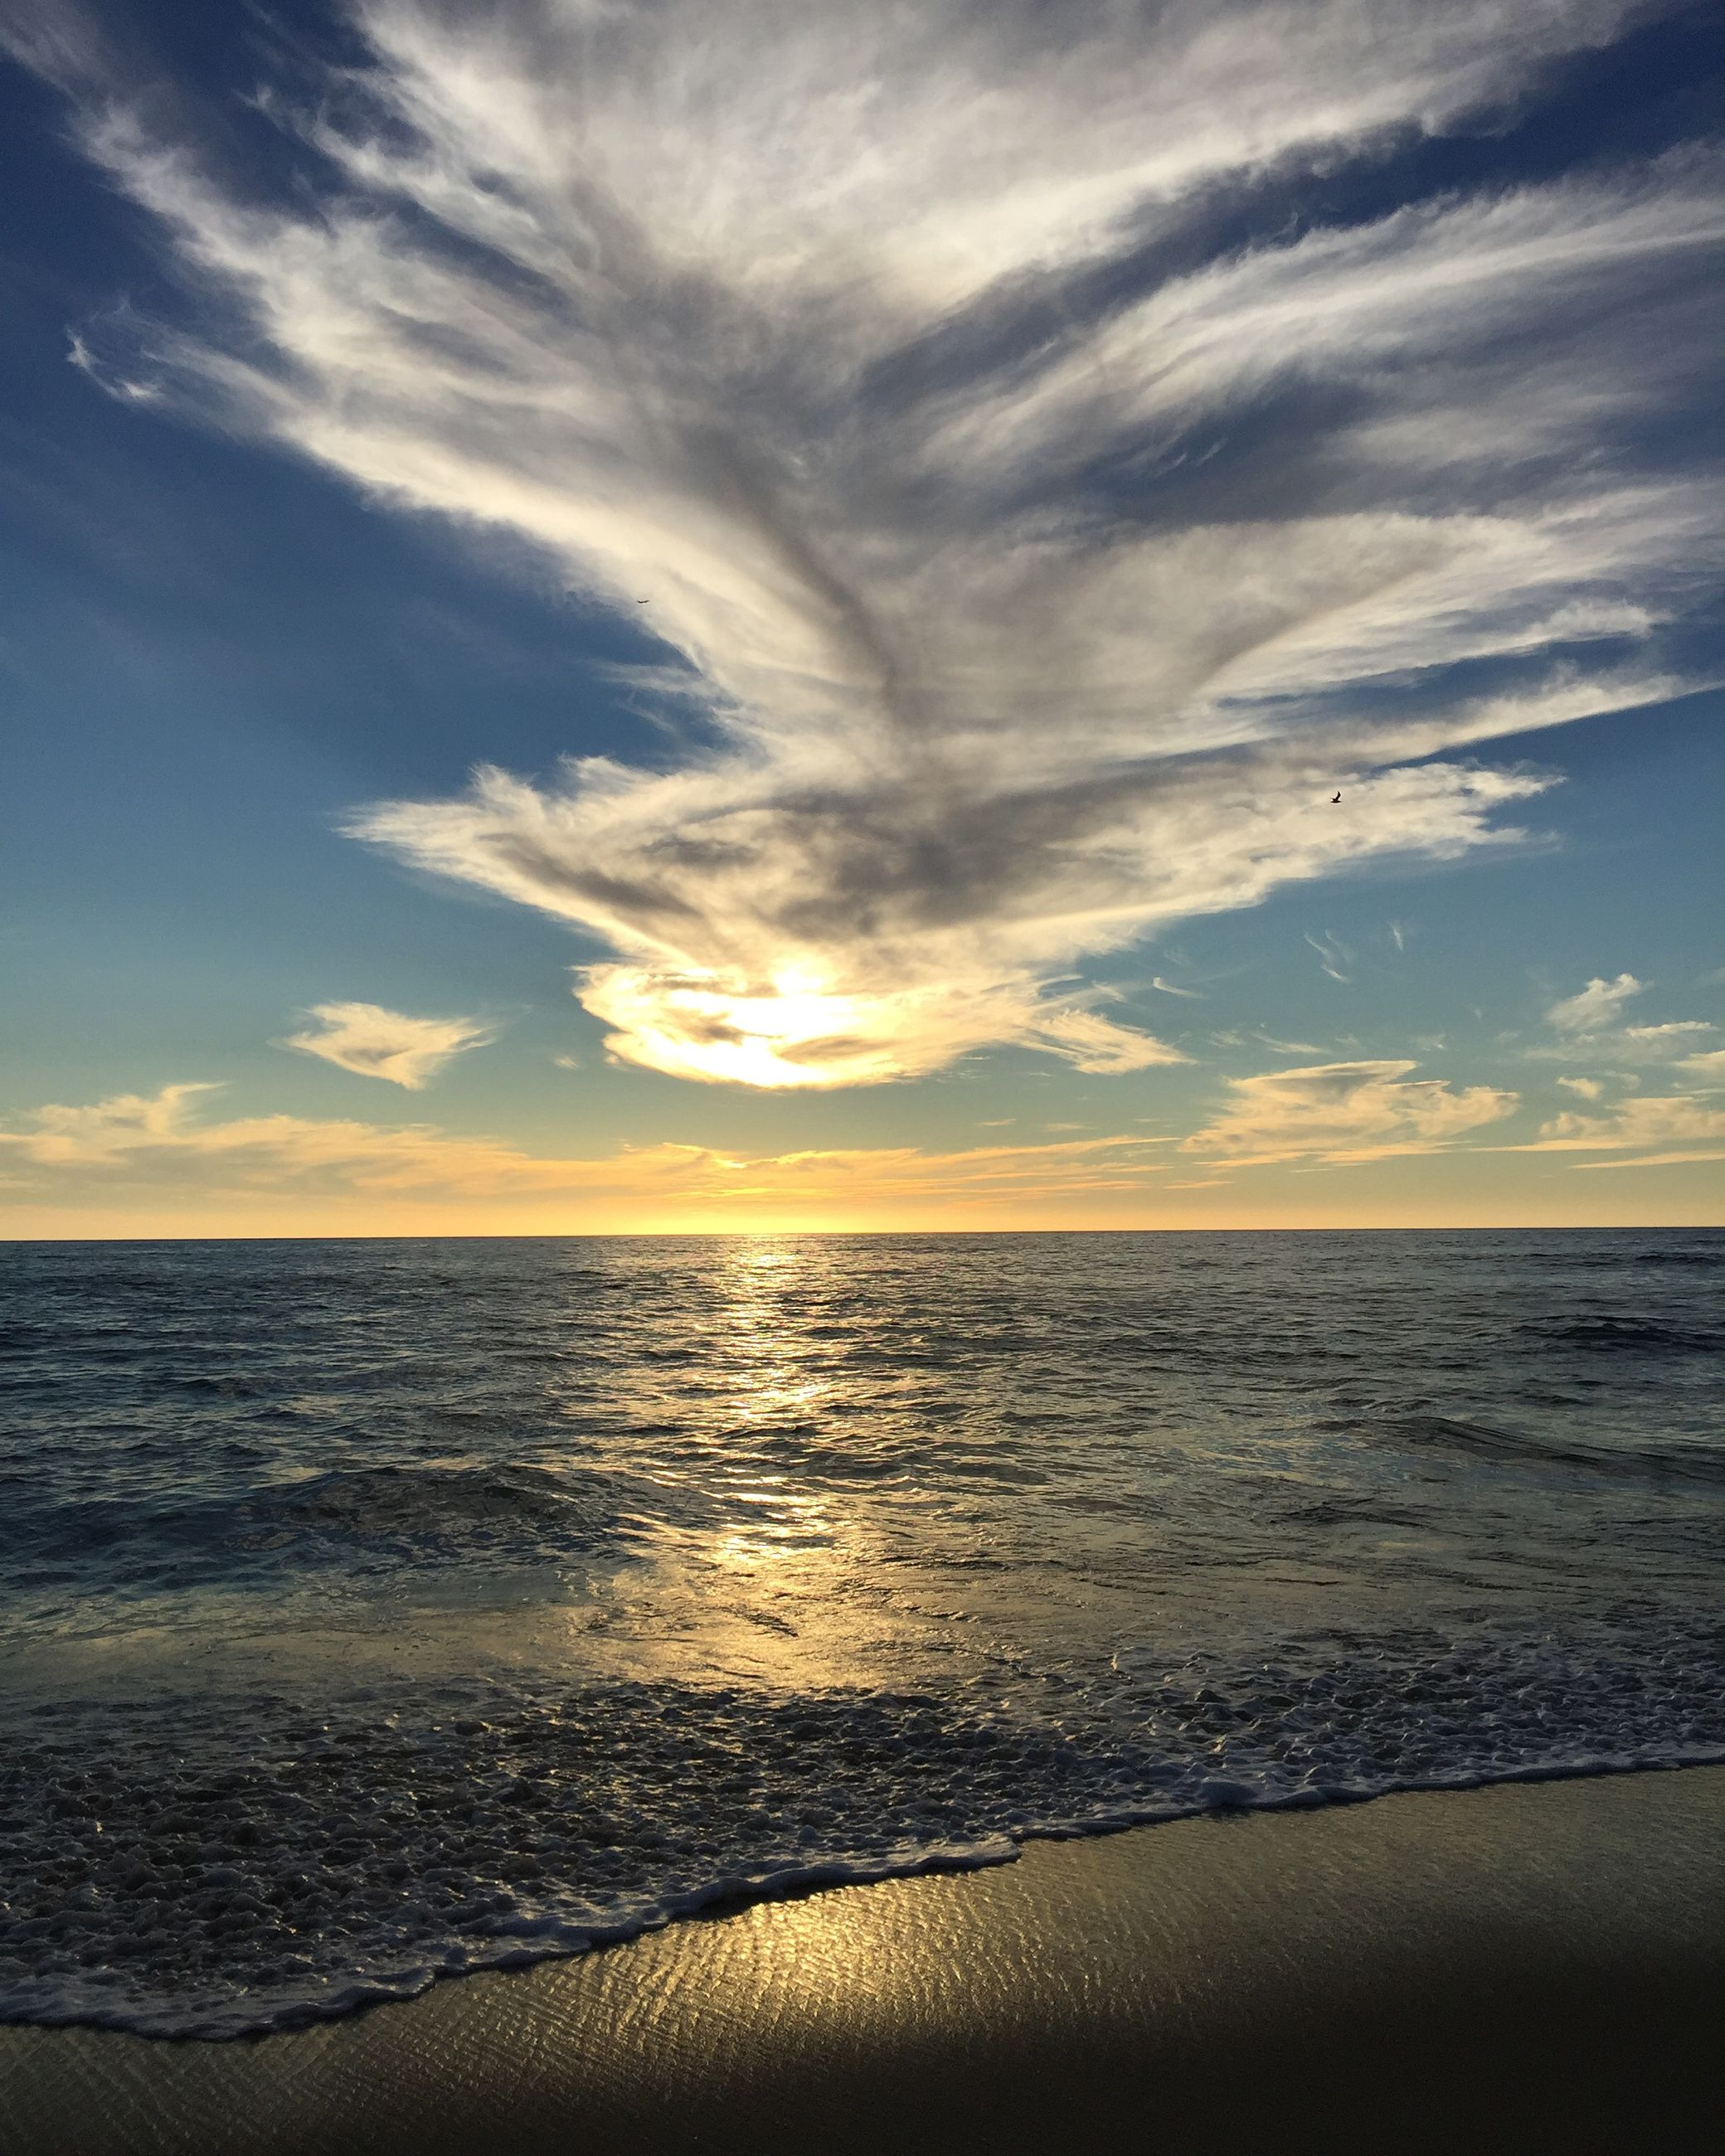 sea, horizon over water, water, tranquil scene, scenics, sunset, sky, tranquility, beach, beauty in nature, shore, nature, idyllic, cloud - sky, cloud, reflection, sun, seascape, remote, outdoors